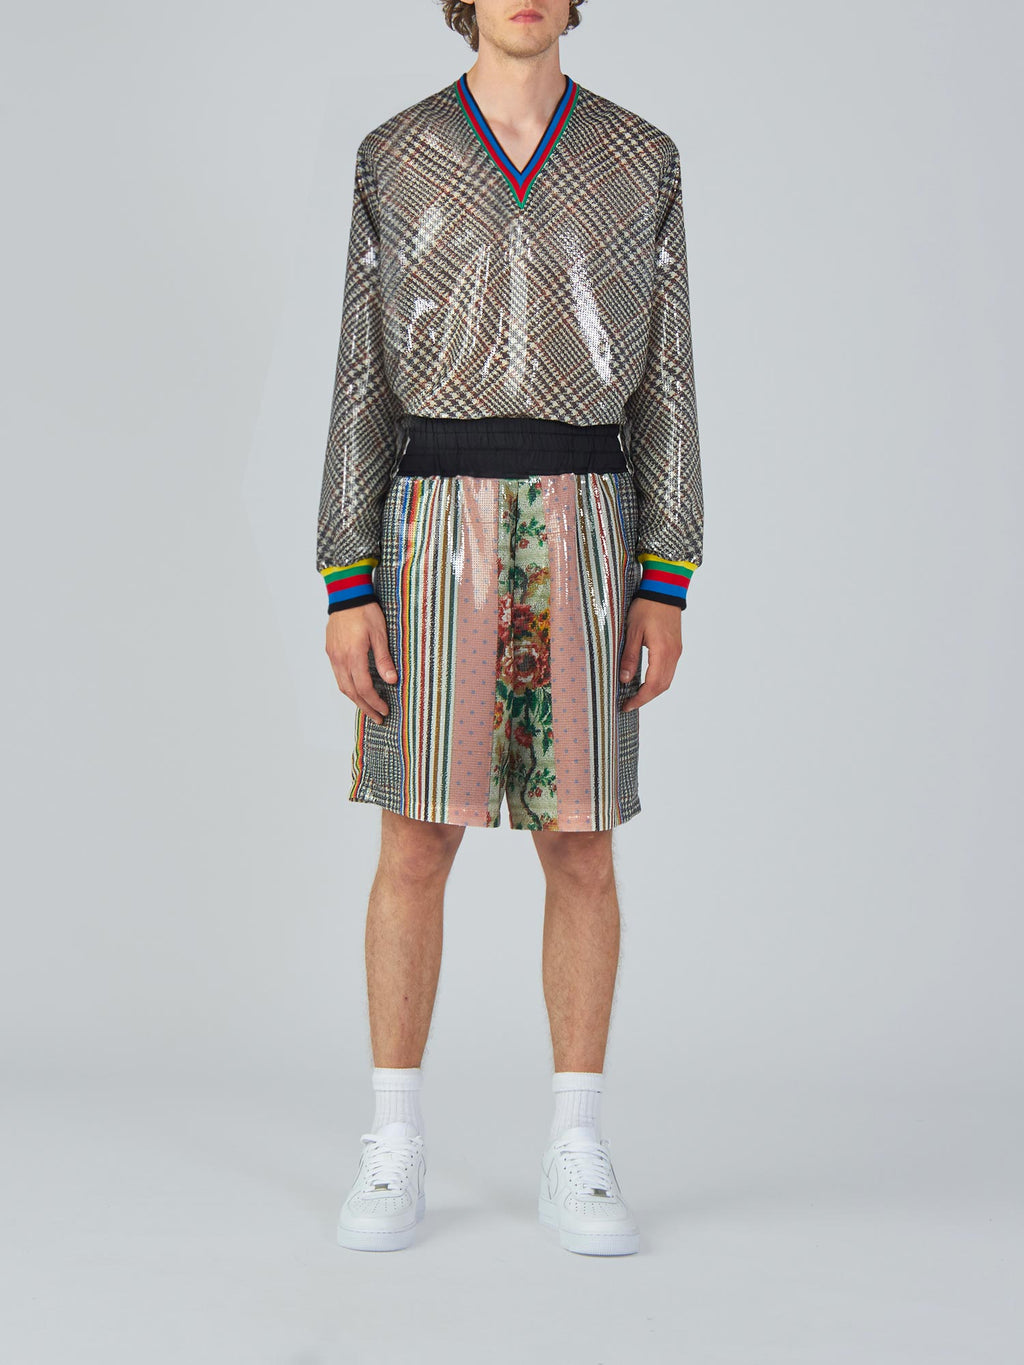 KURT SEQUINS SHORTS